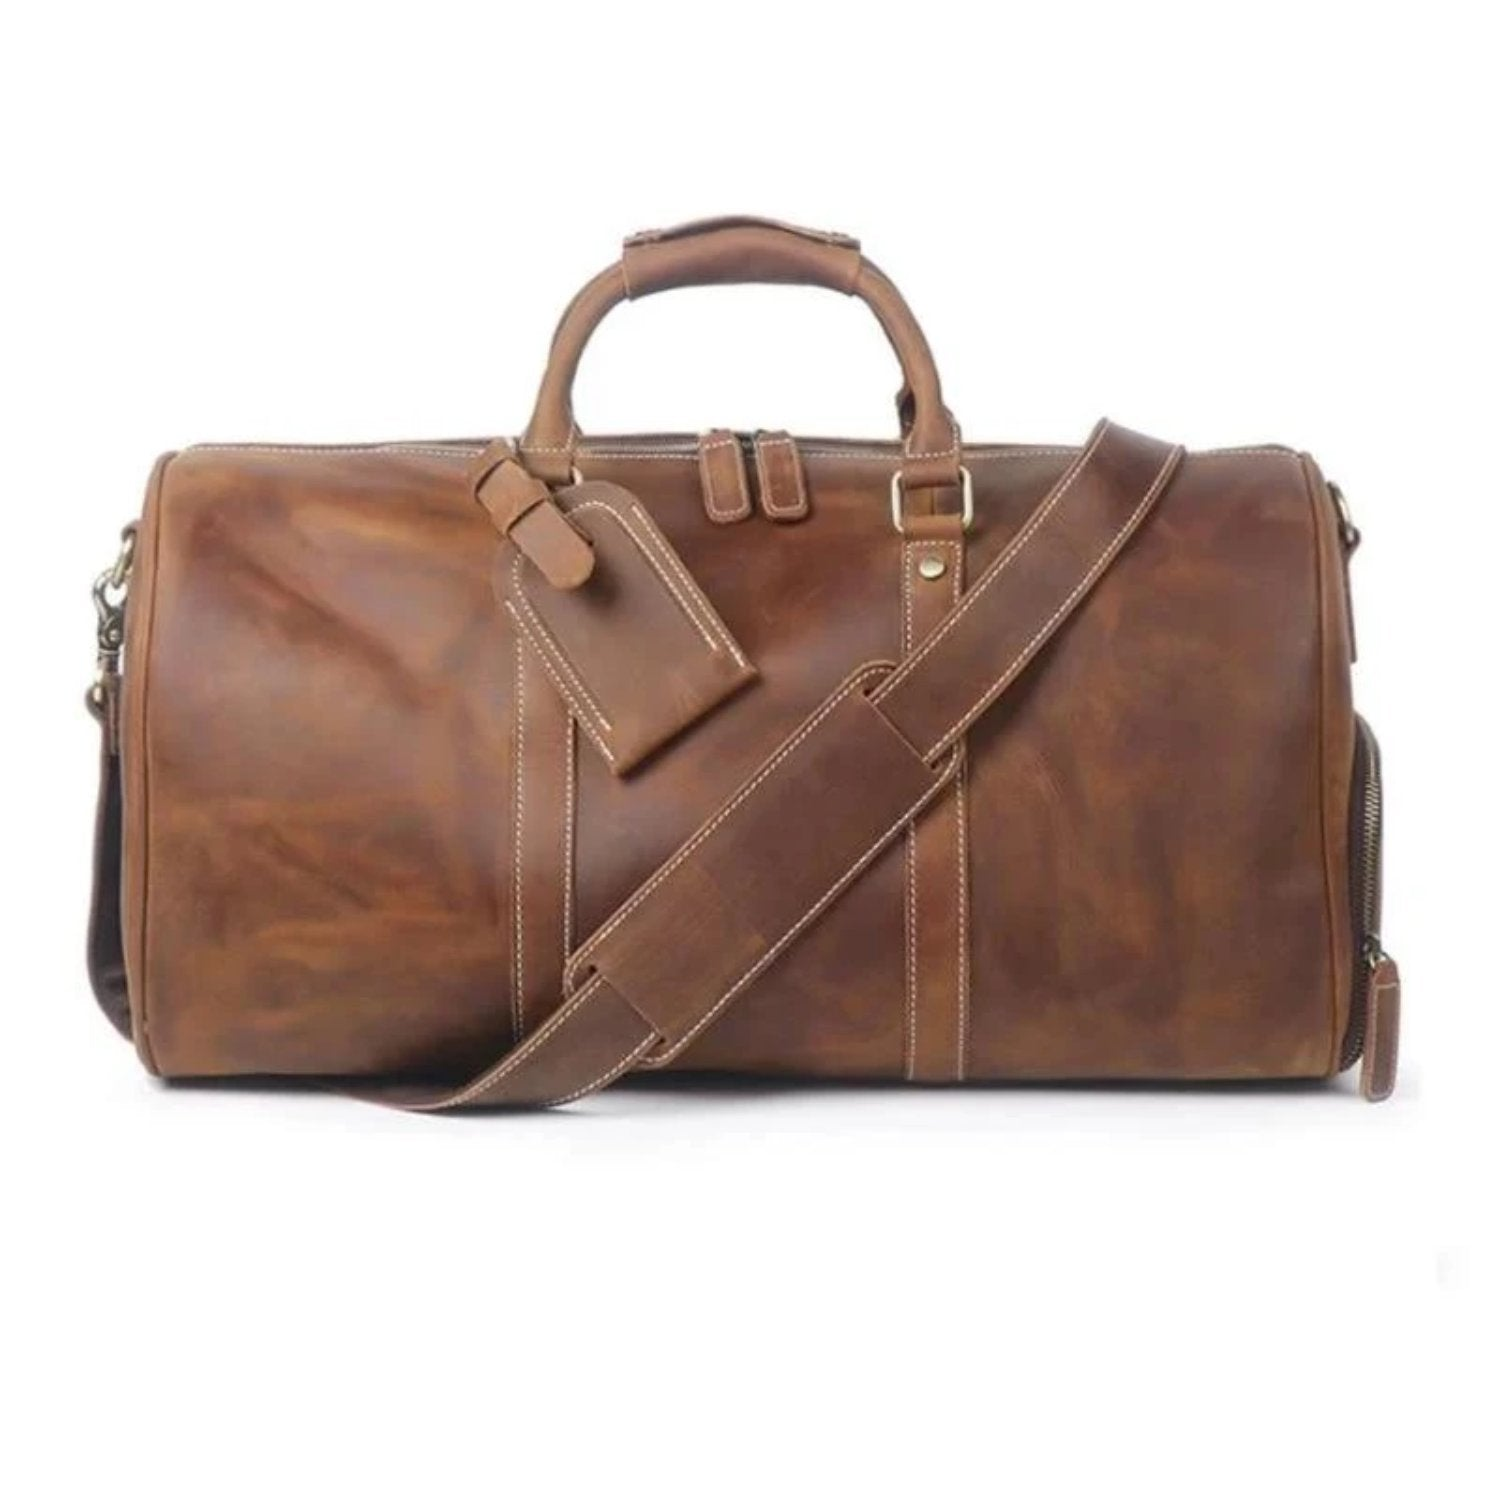 The Dagny Weekender | Large Leather Duffle Bag - STEEL HORSE LEATHER